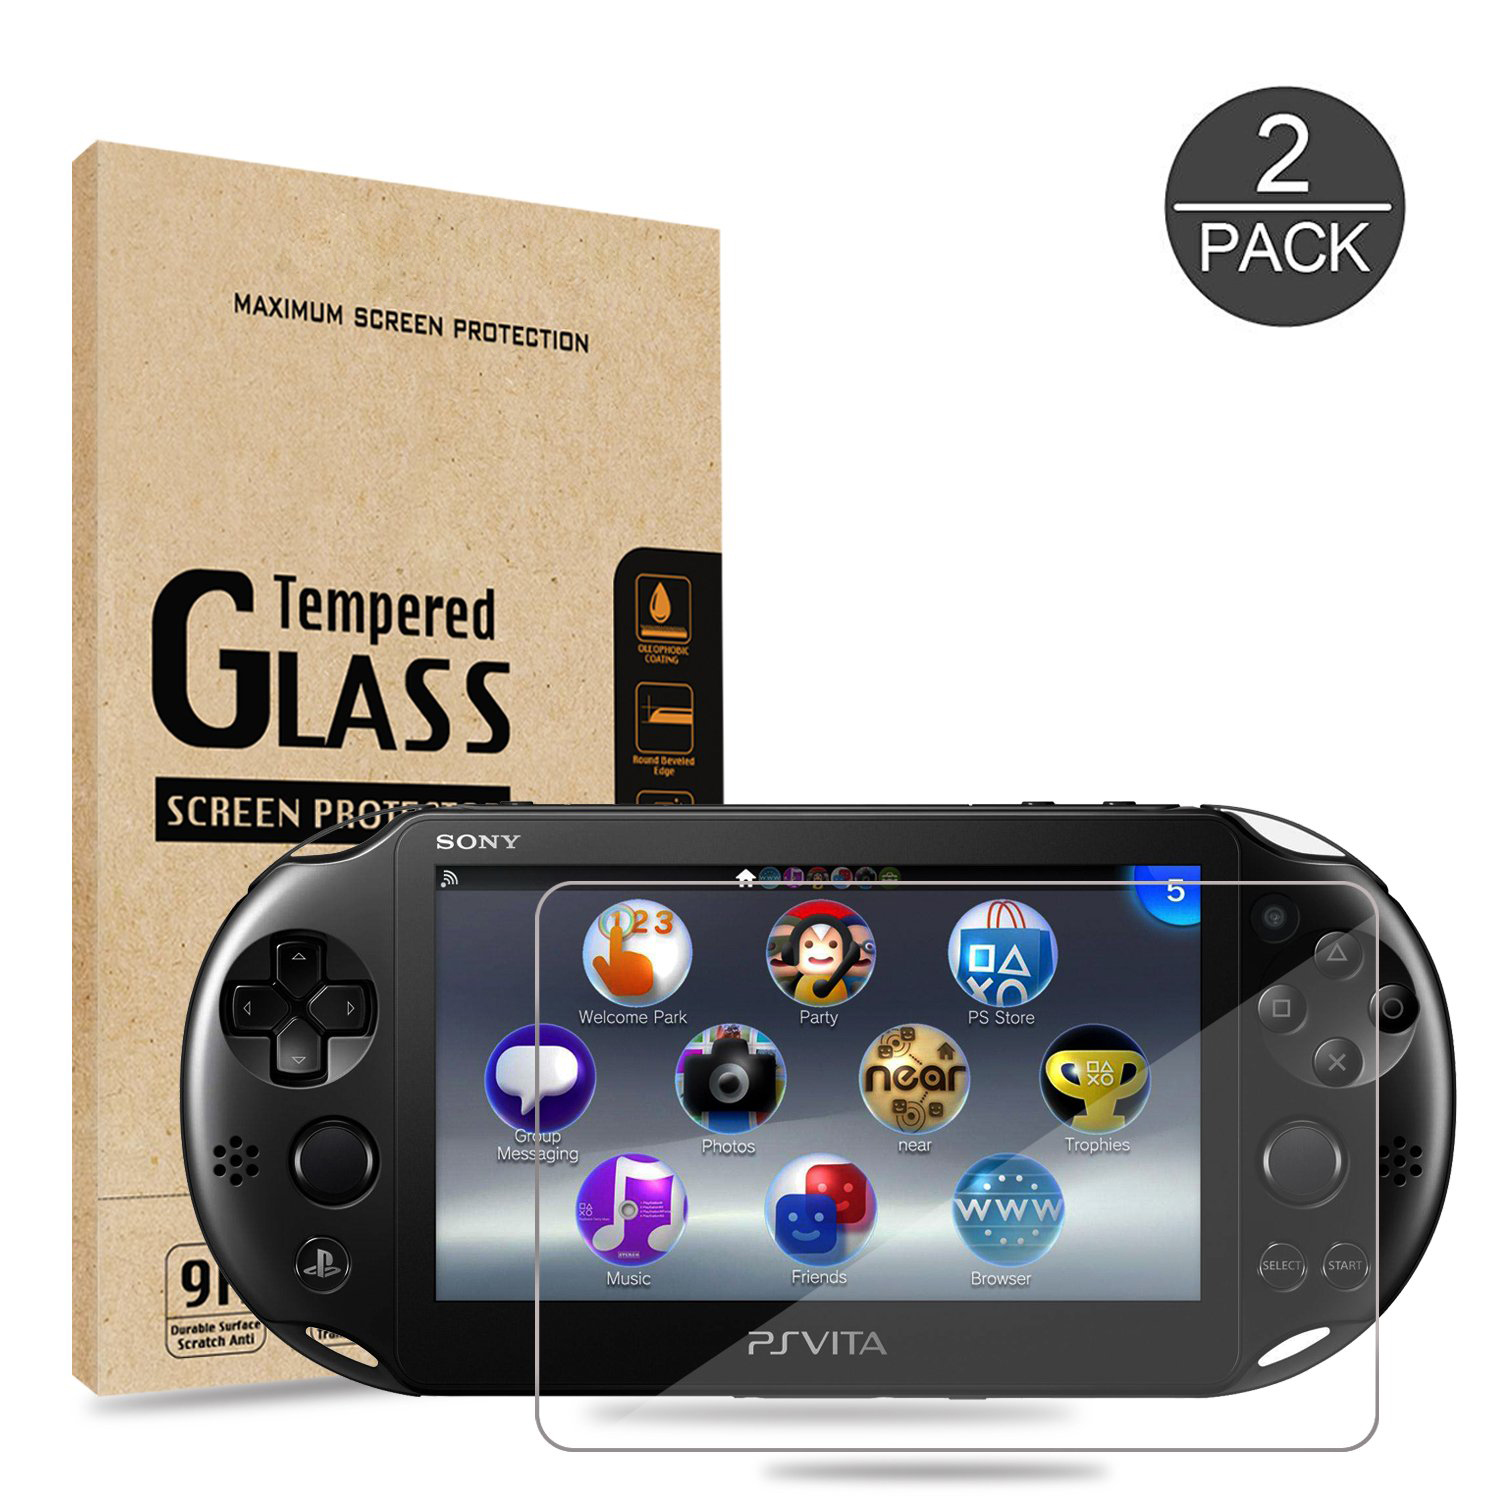 <font><b>PS</b></font> <font><b>Vita</b></font> <font><b>2000</b></font> Tempered Glass for Front <font><b>Screen</b></font> and HD Clear PET Film <font><b>Screen</b></font> Protectors Compatible Sony Playstation Back Covers image